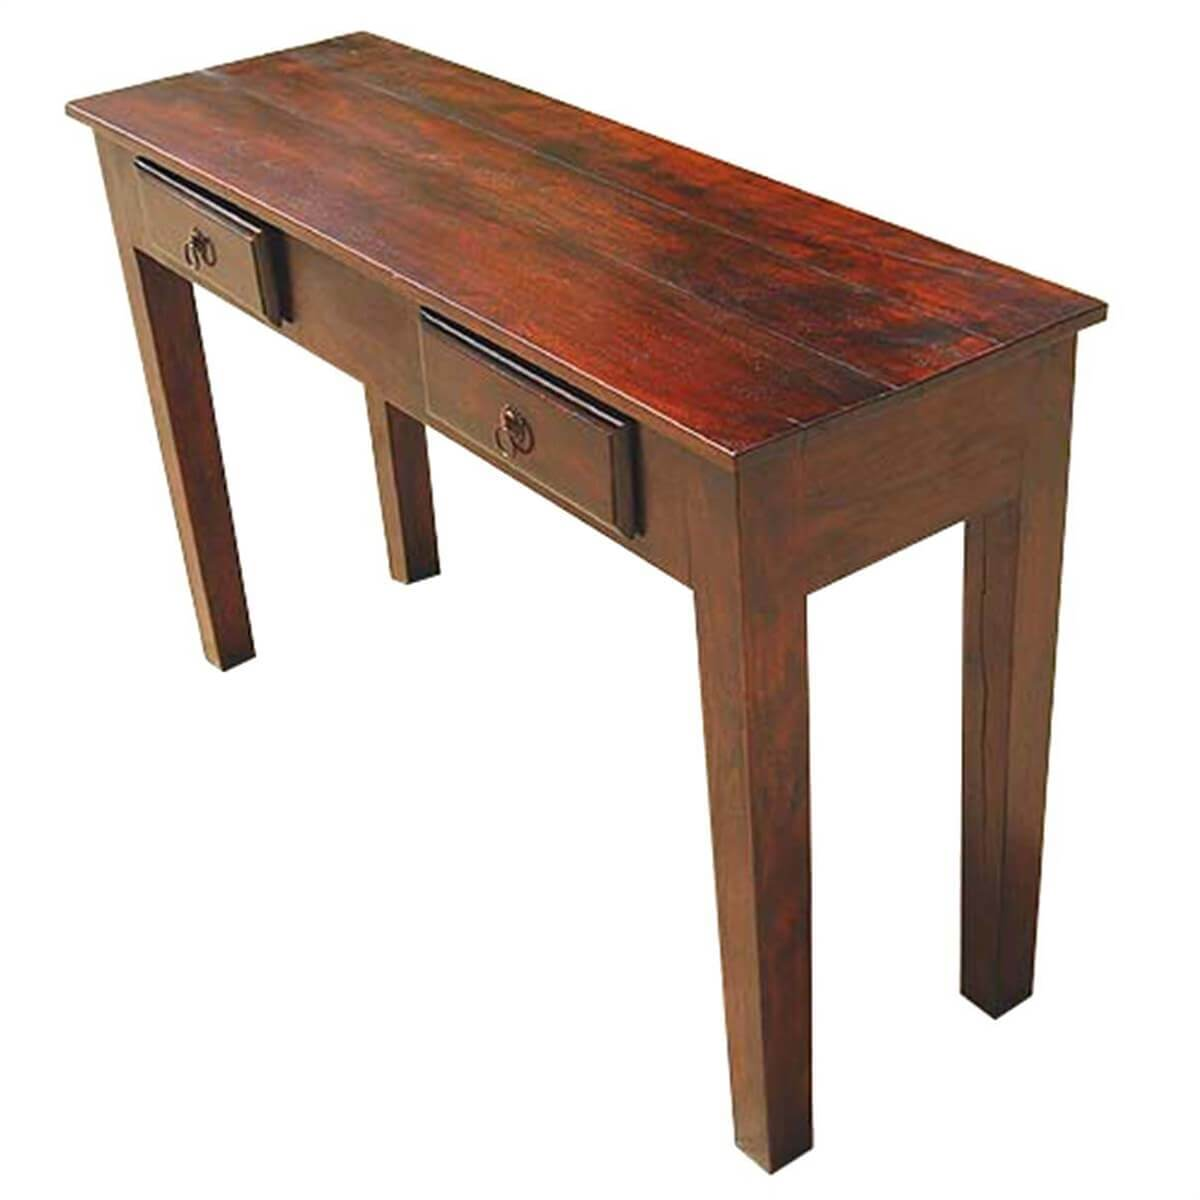 entry table with drawers Wood Storage Drawers Console Hall Entry Way Foyer Table entry table with drawers